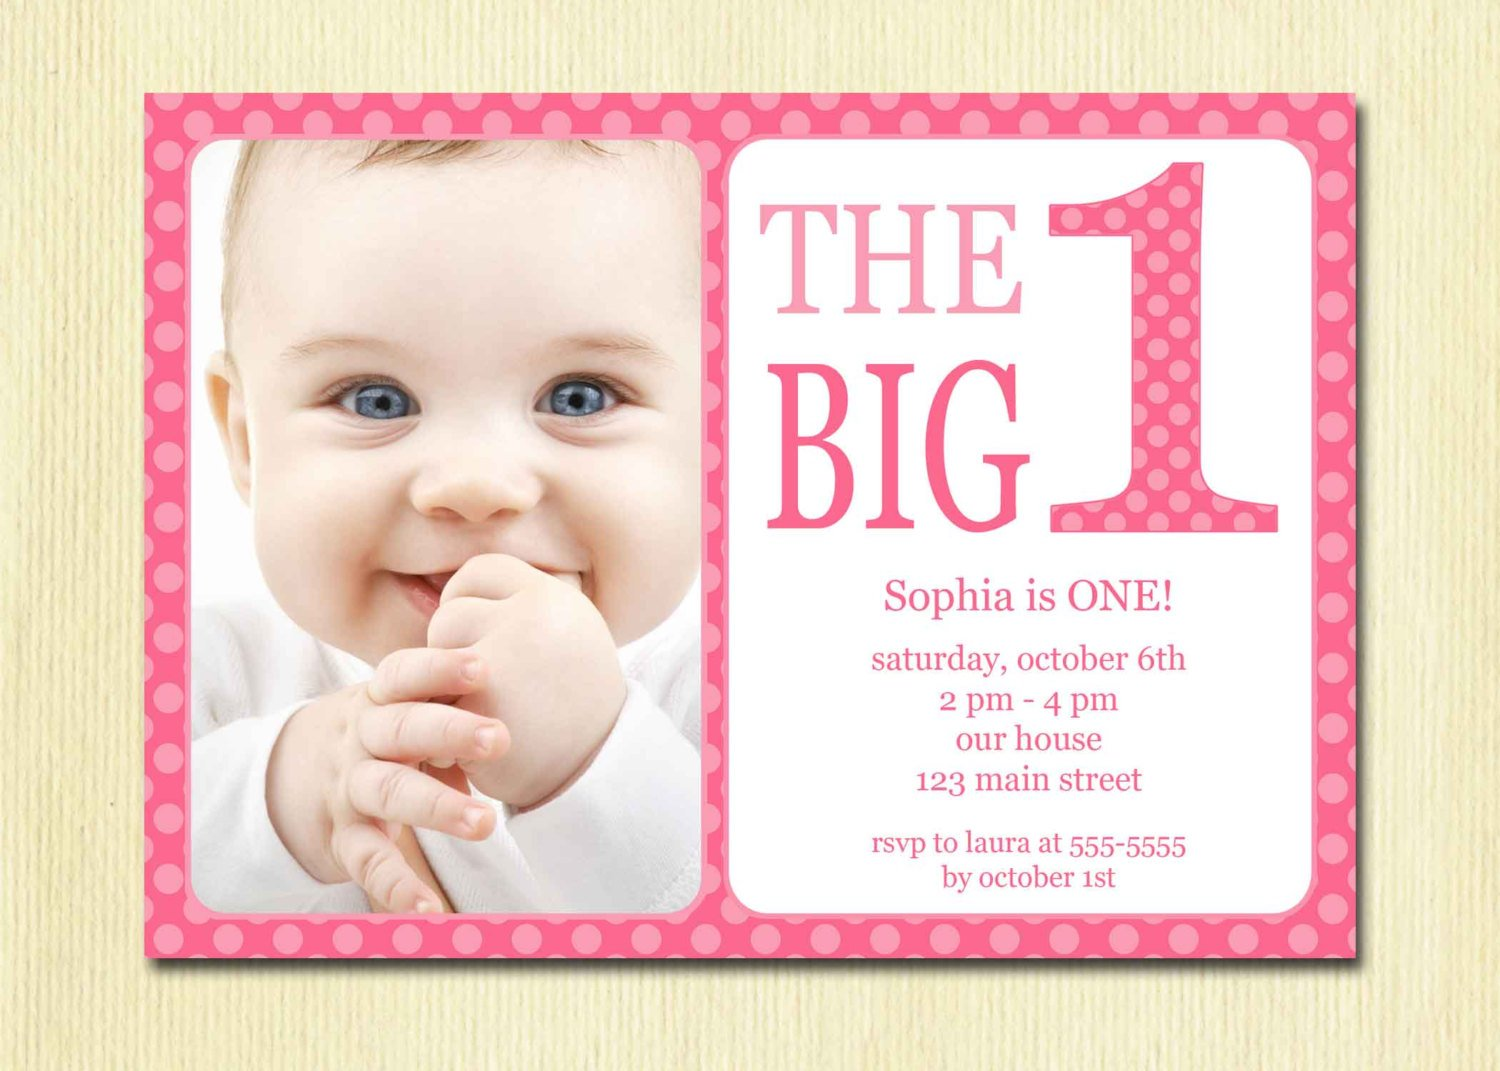 Baby birthday invitation templates stopboris